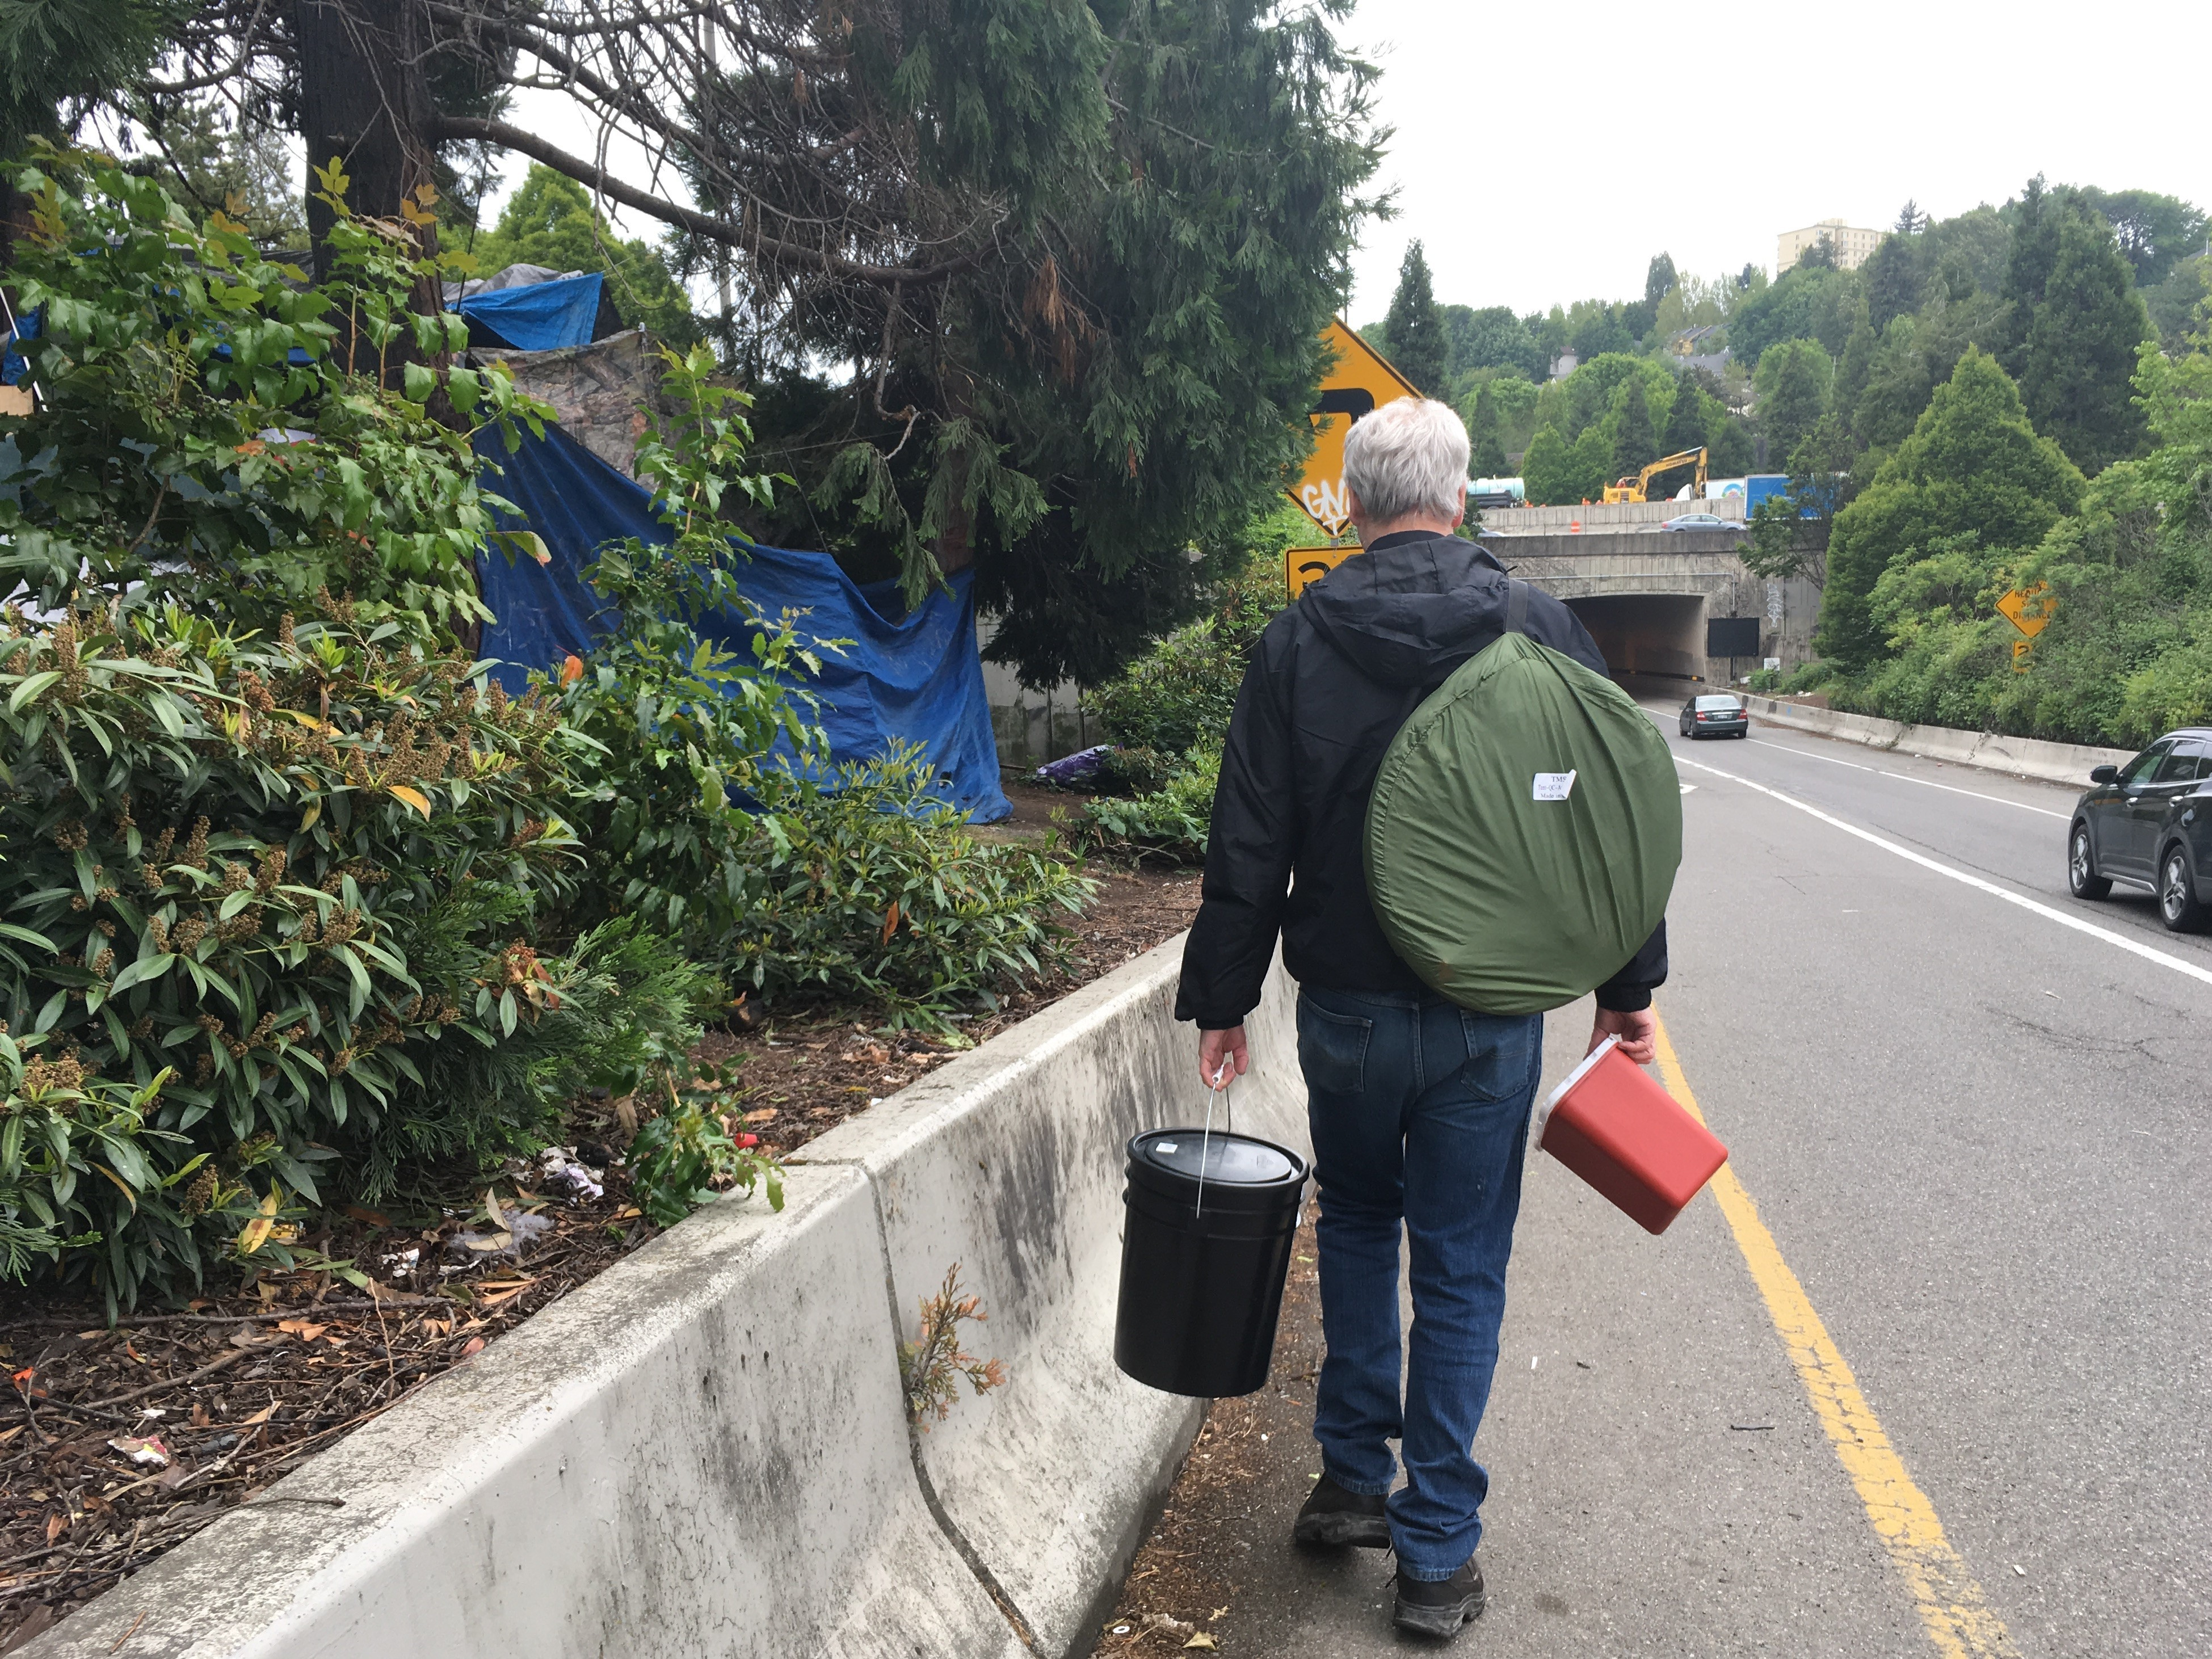 Seattle Man's Toilet Kit For The Homeless Brings Privacy, Opens Doors